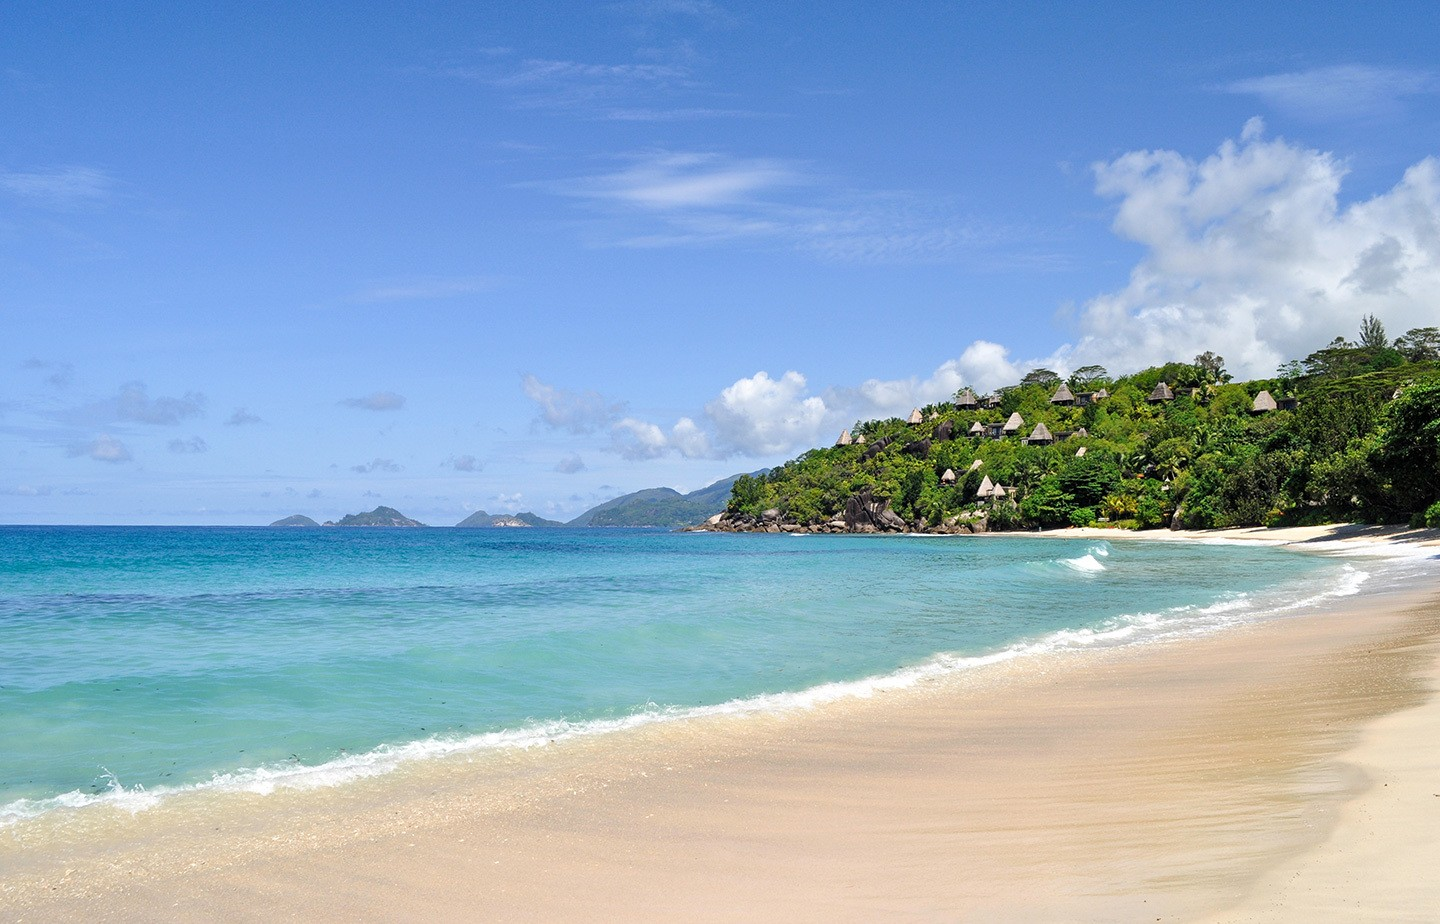 Golden sands at Anse Louis beach in the Seychelles